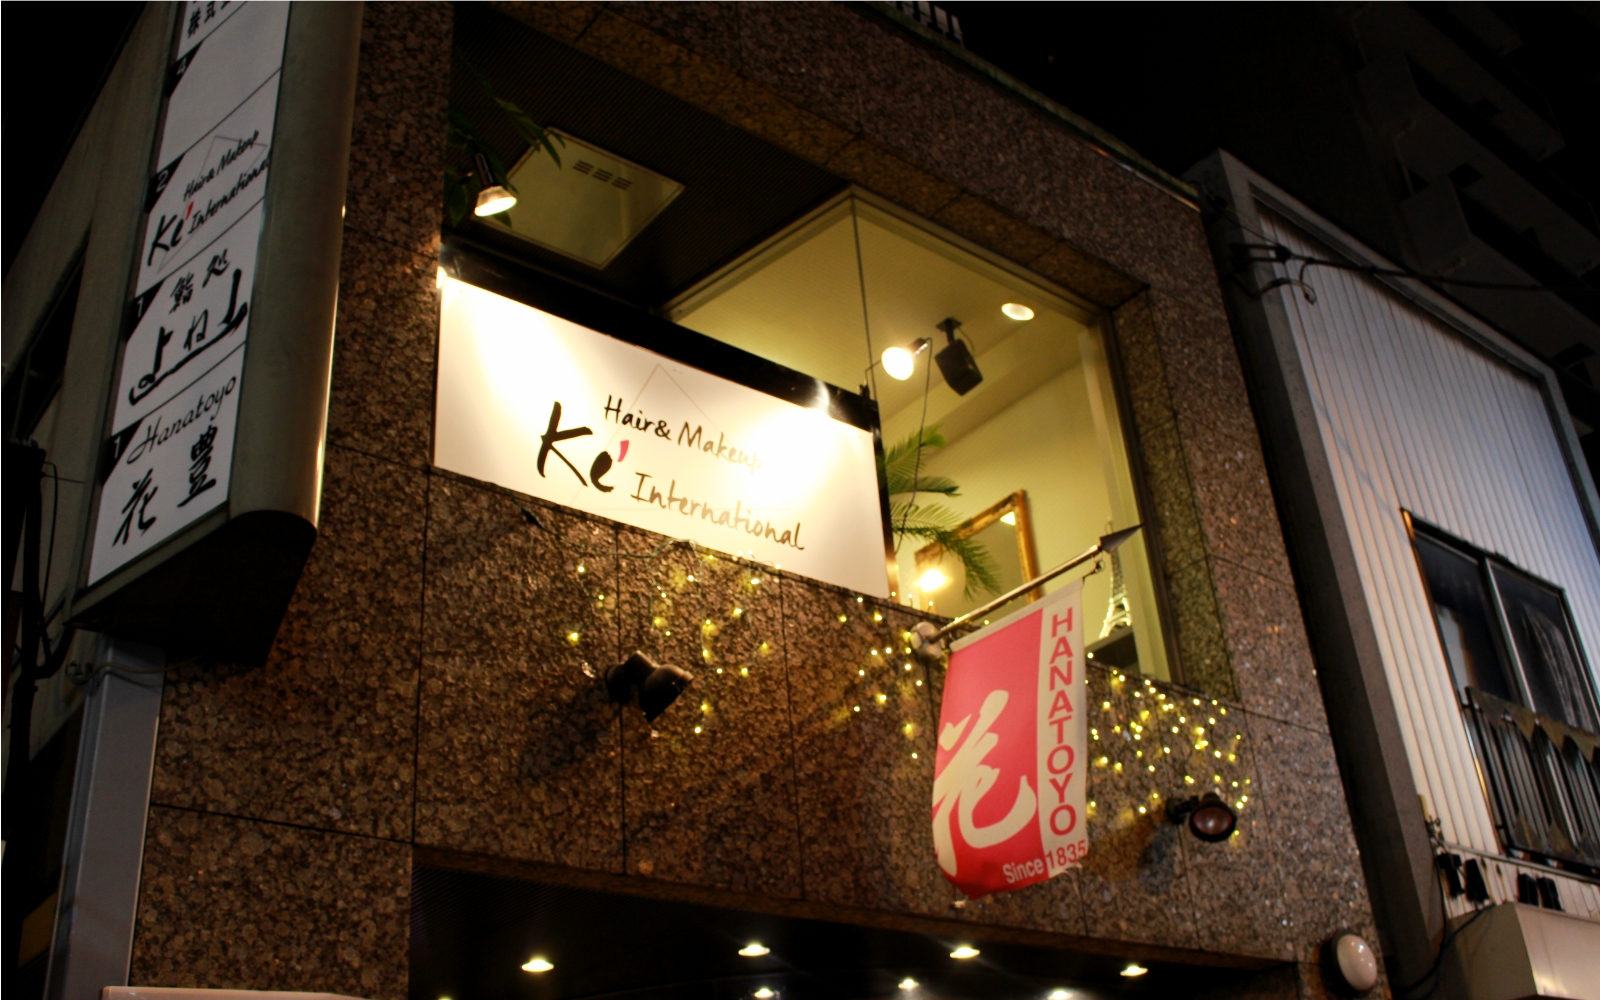 Ke' International - 50 Beauty Salons